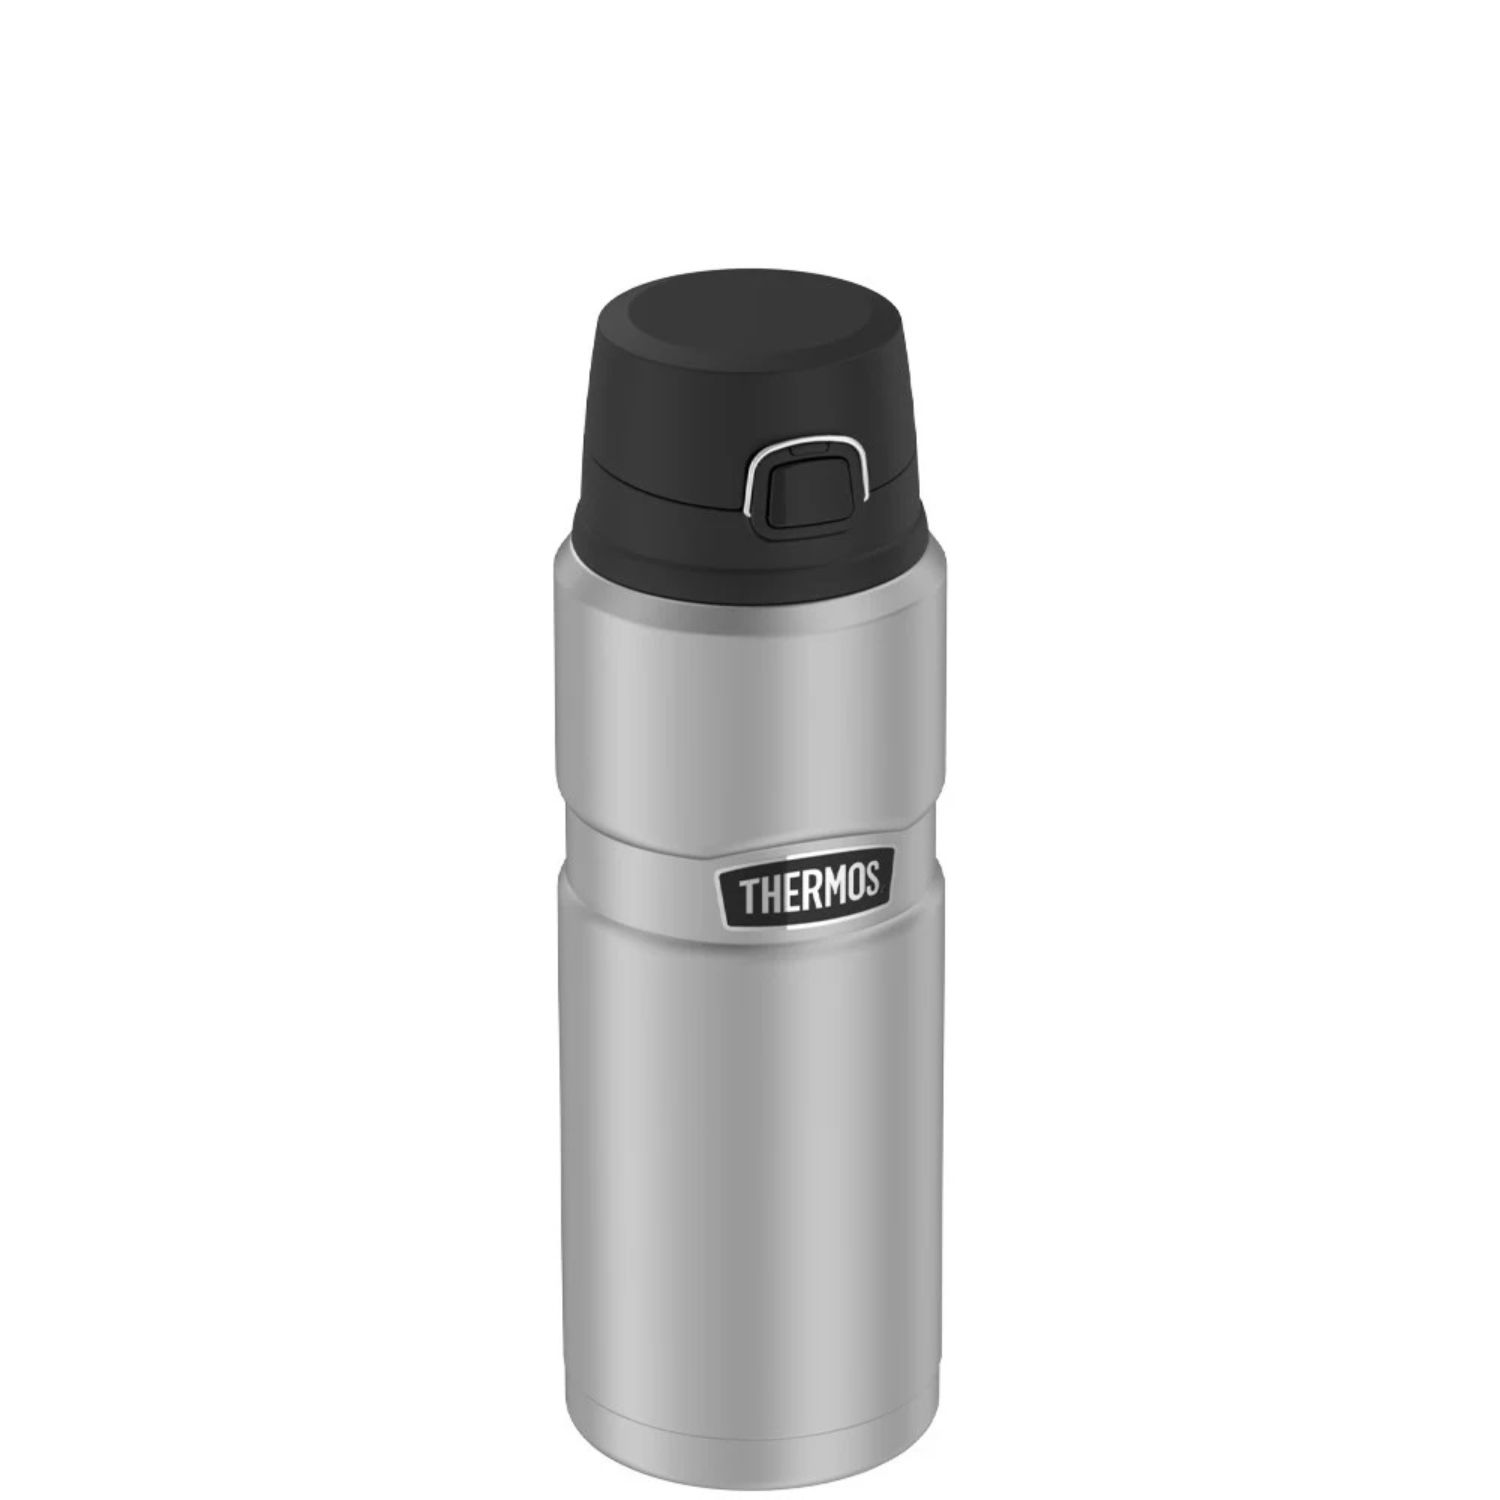 Thermos 24 oz Stainless Steel Drink Bottle Silver